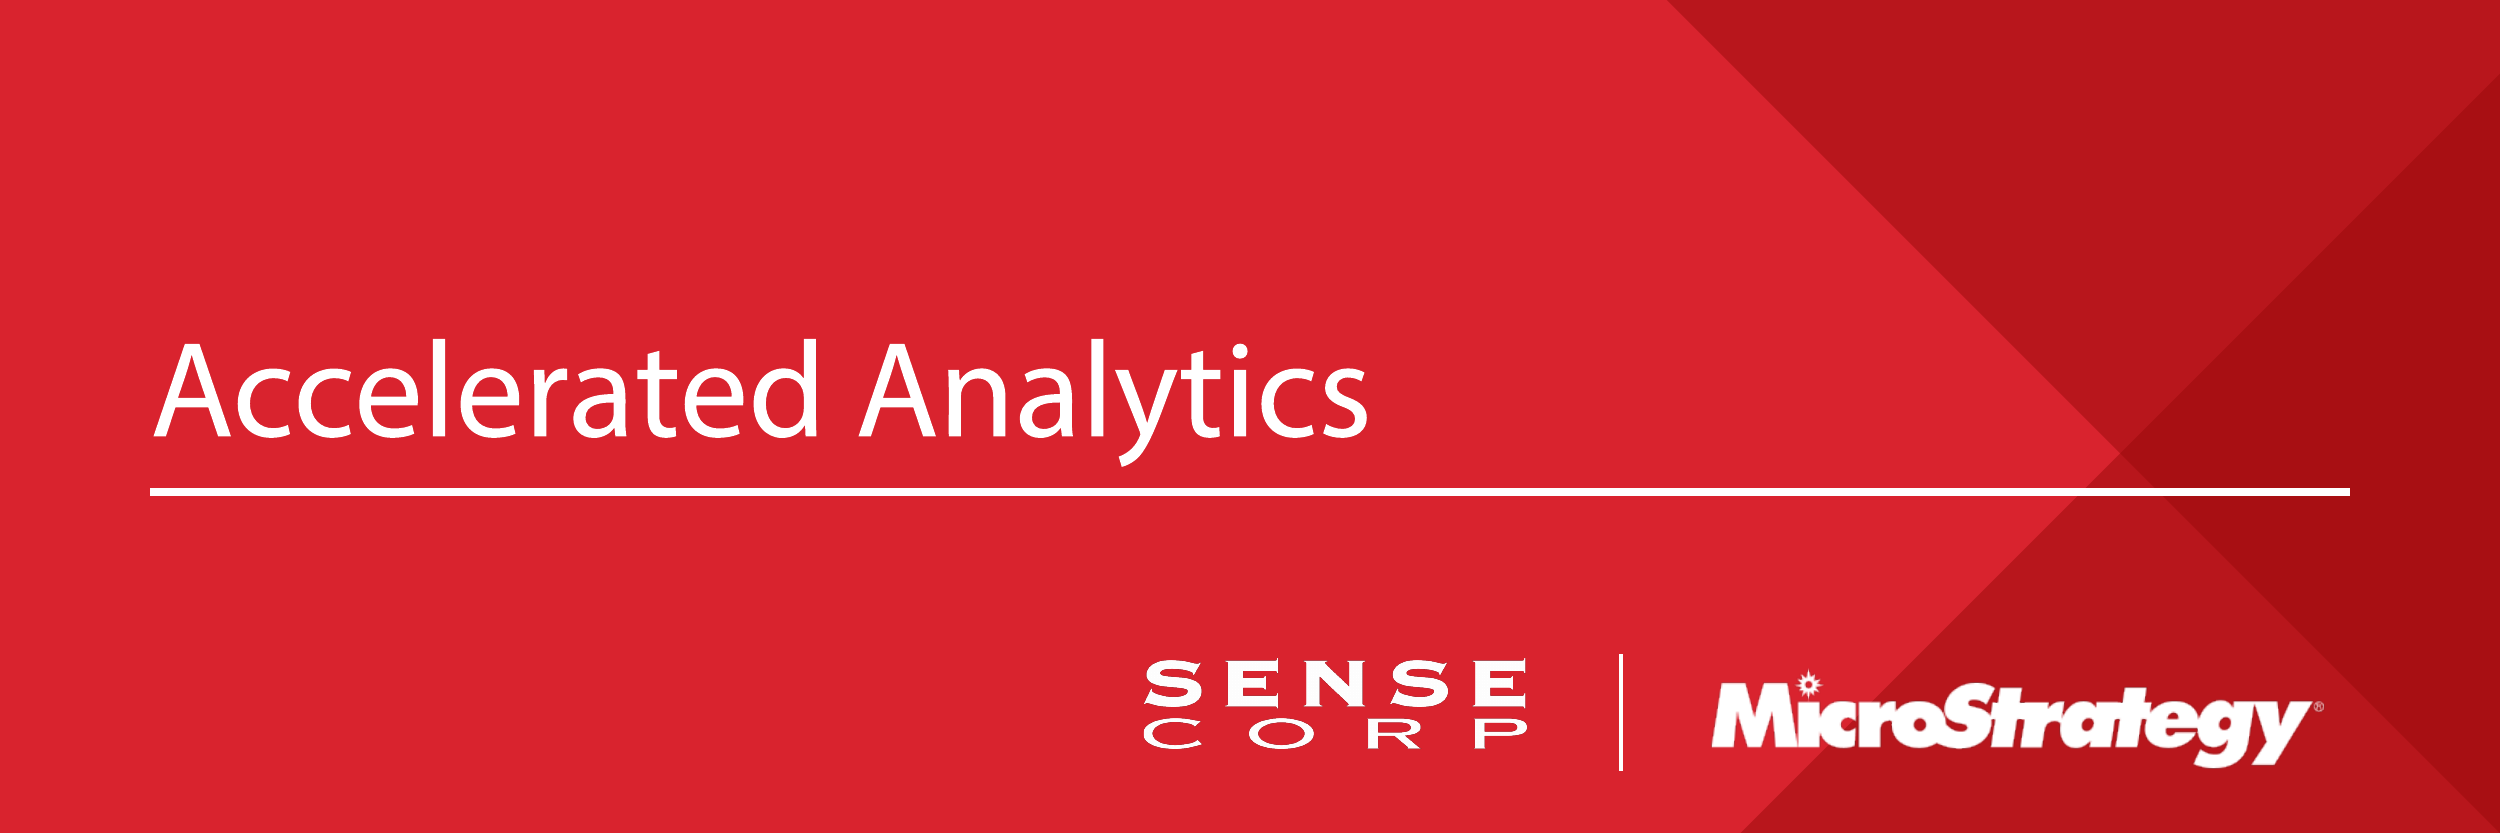 Accelerated Analytics Presented by Sense Corp and MicroStrategy